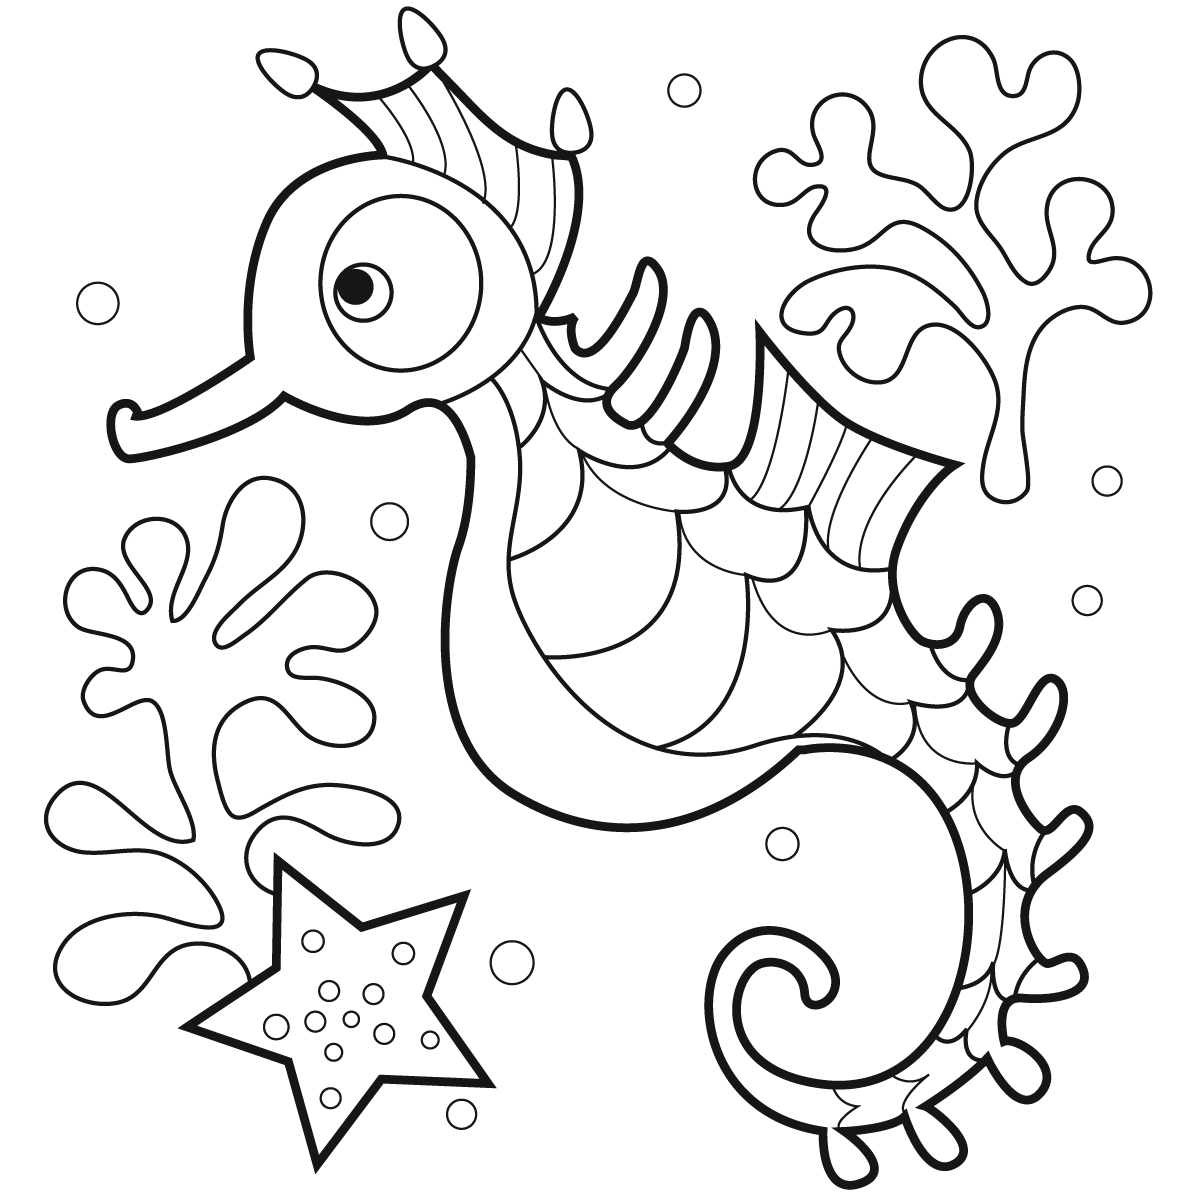 Free printable seahorse coloring pages for kids for Free printable coloring pages for adults and kids